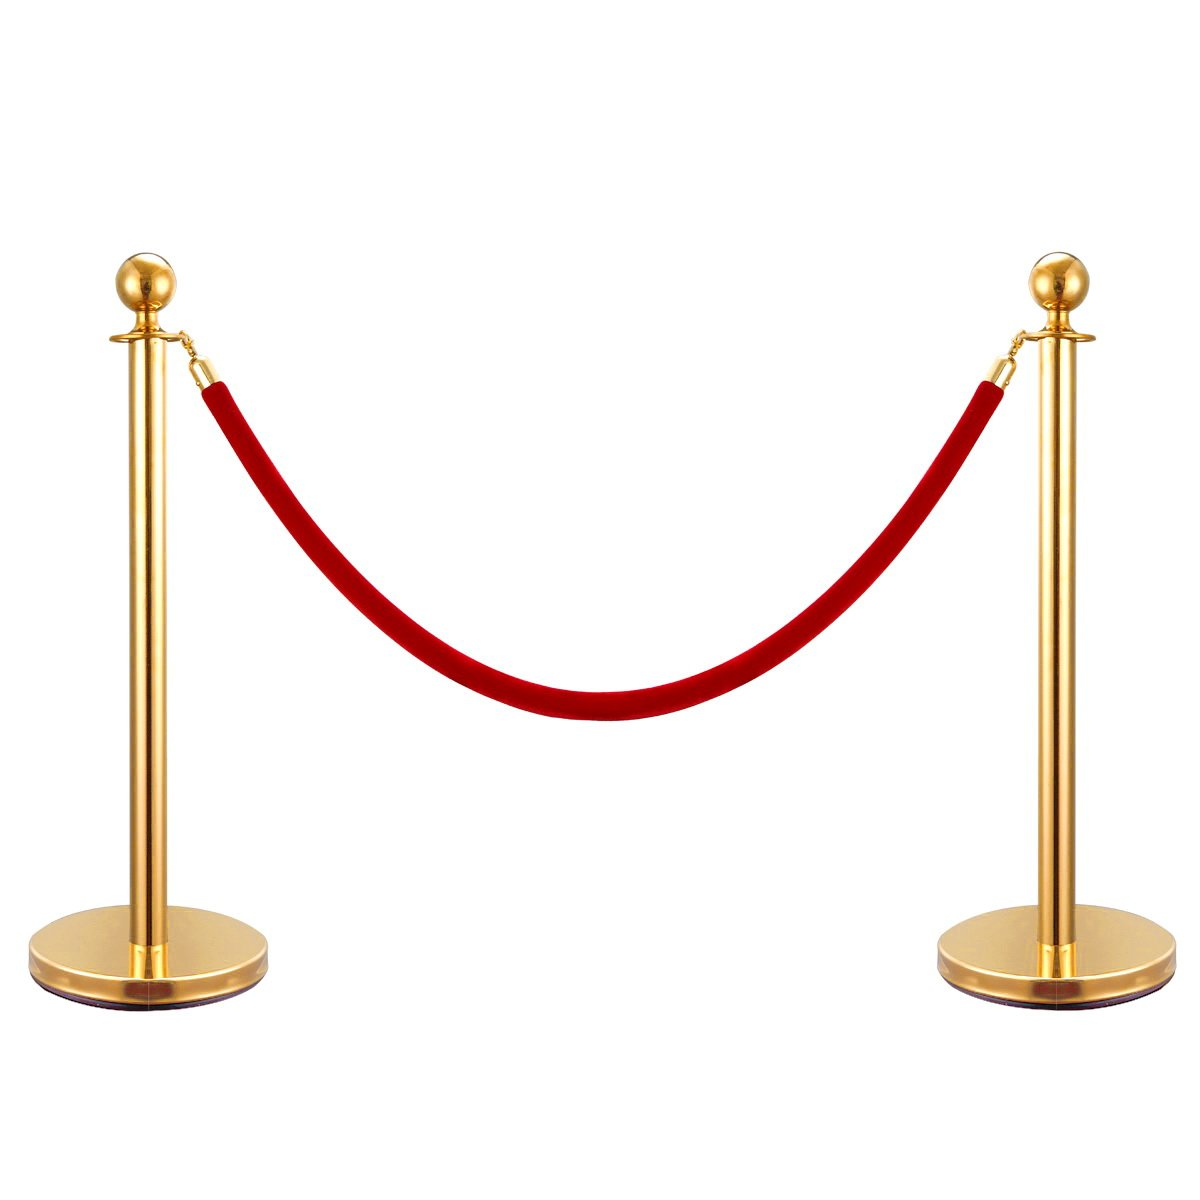 JAXPETY Round Top Polished Brass Stanchion Posts Queue Barrier, Pack of 2 Posts with Red Velvet Ropes,Gold